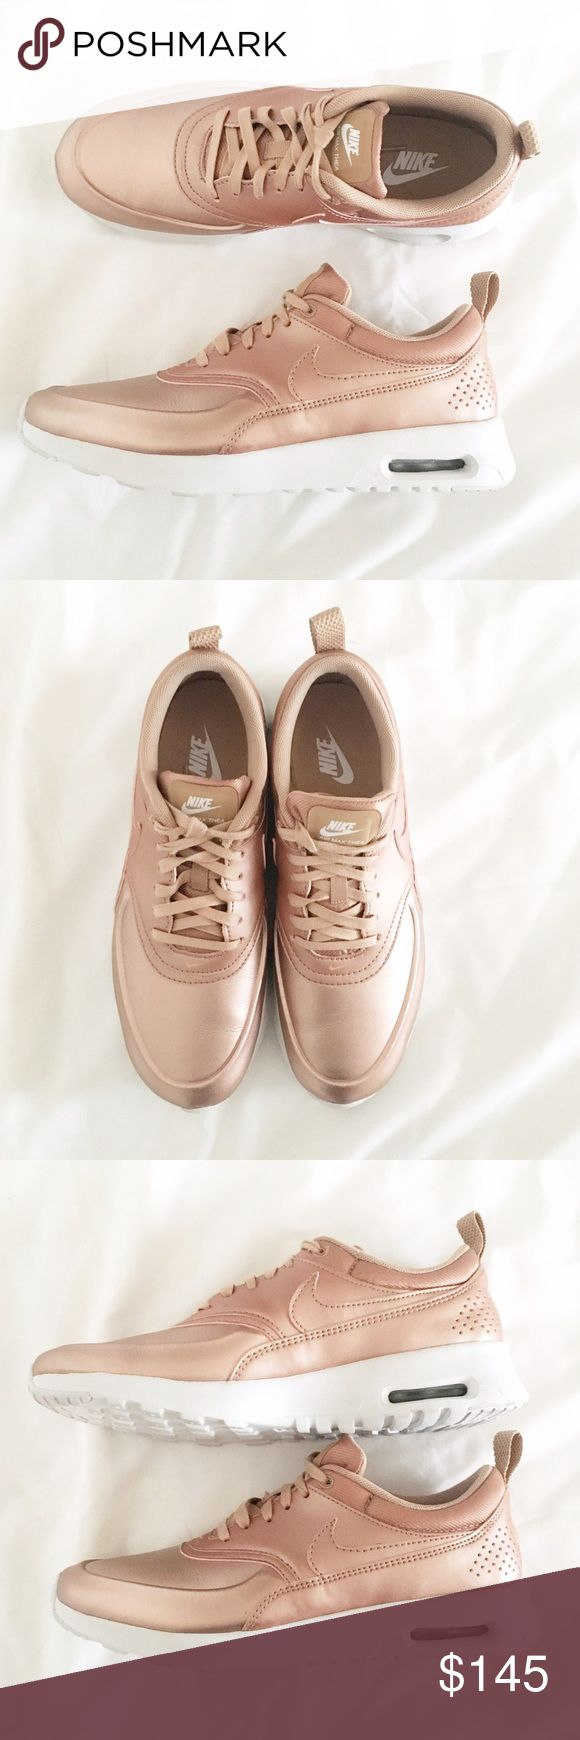 ✨ Nike l RoseGold Red Metallic Nike Air Max Thea Absolutely beautiful Nike rose gold or officially, red metallic Air Max Thea sneakers. Super rare and hard to find! Wore these a total of one time and bought from Nordstrom. In like new condition. Nike Shoes Sneakers